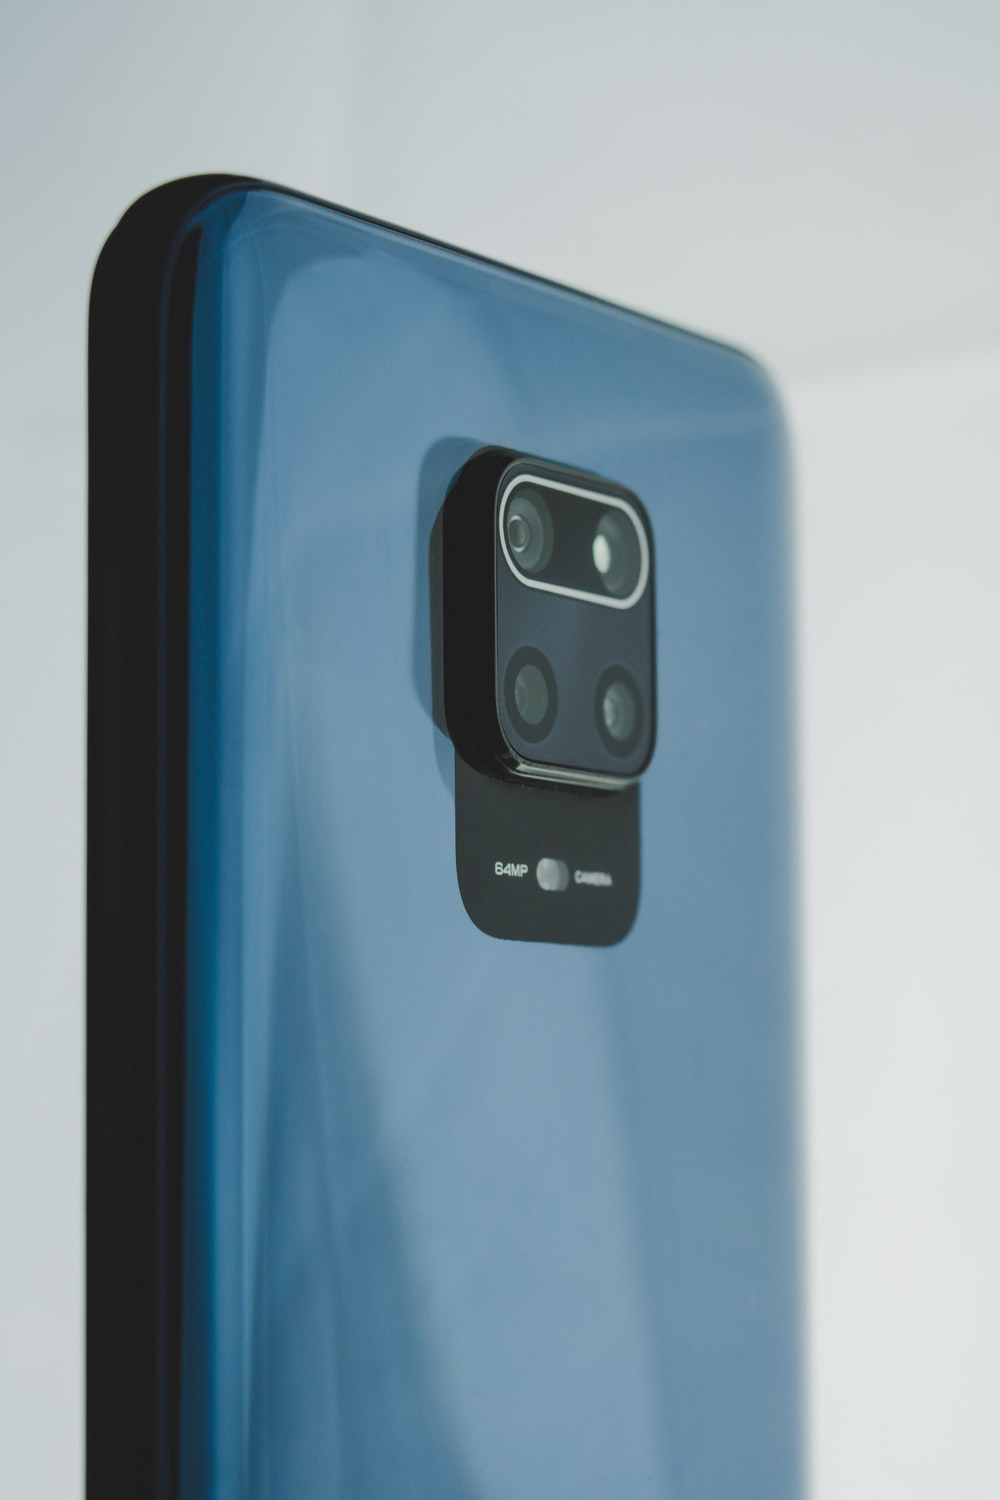 black and blue smartphone on white table